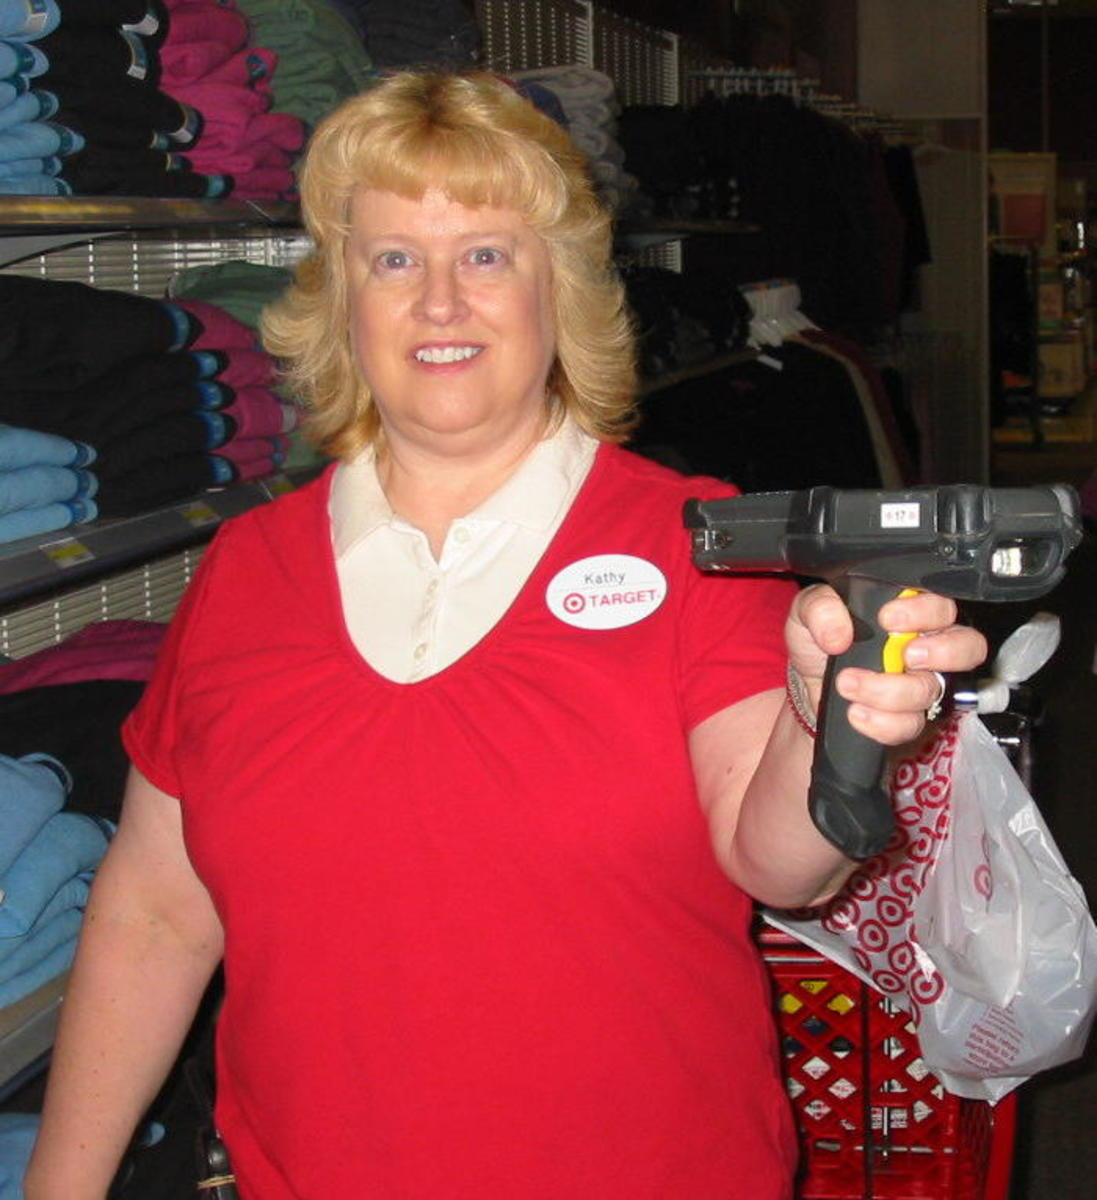 Yes, it was Target that I worked for